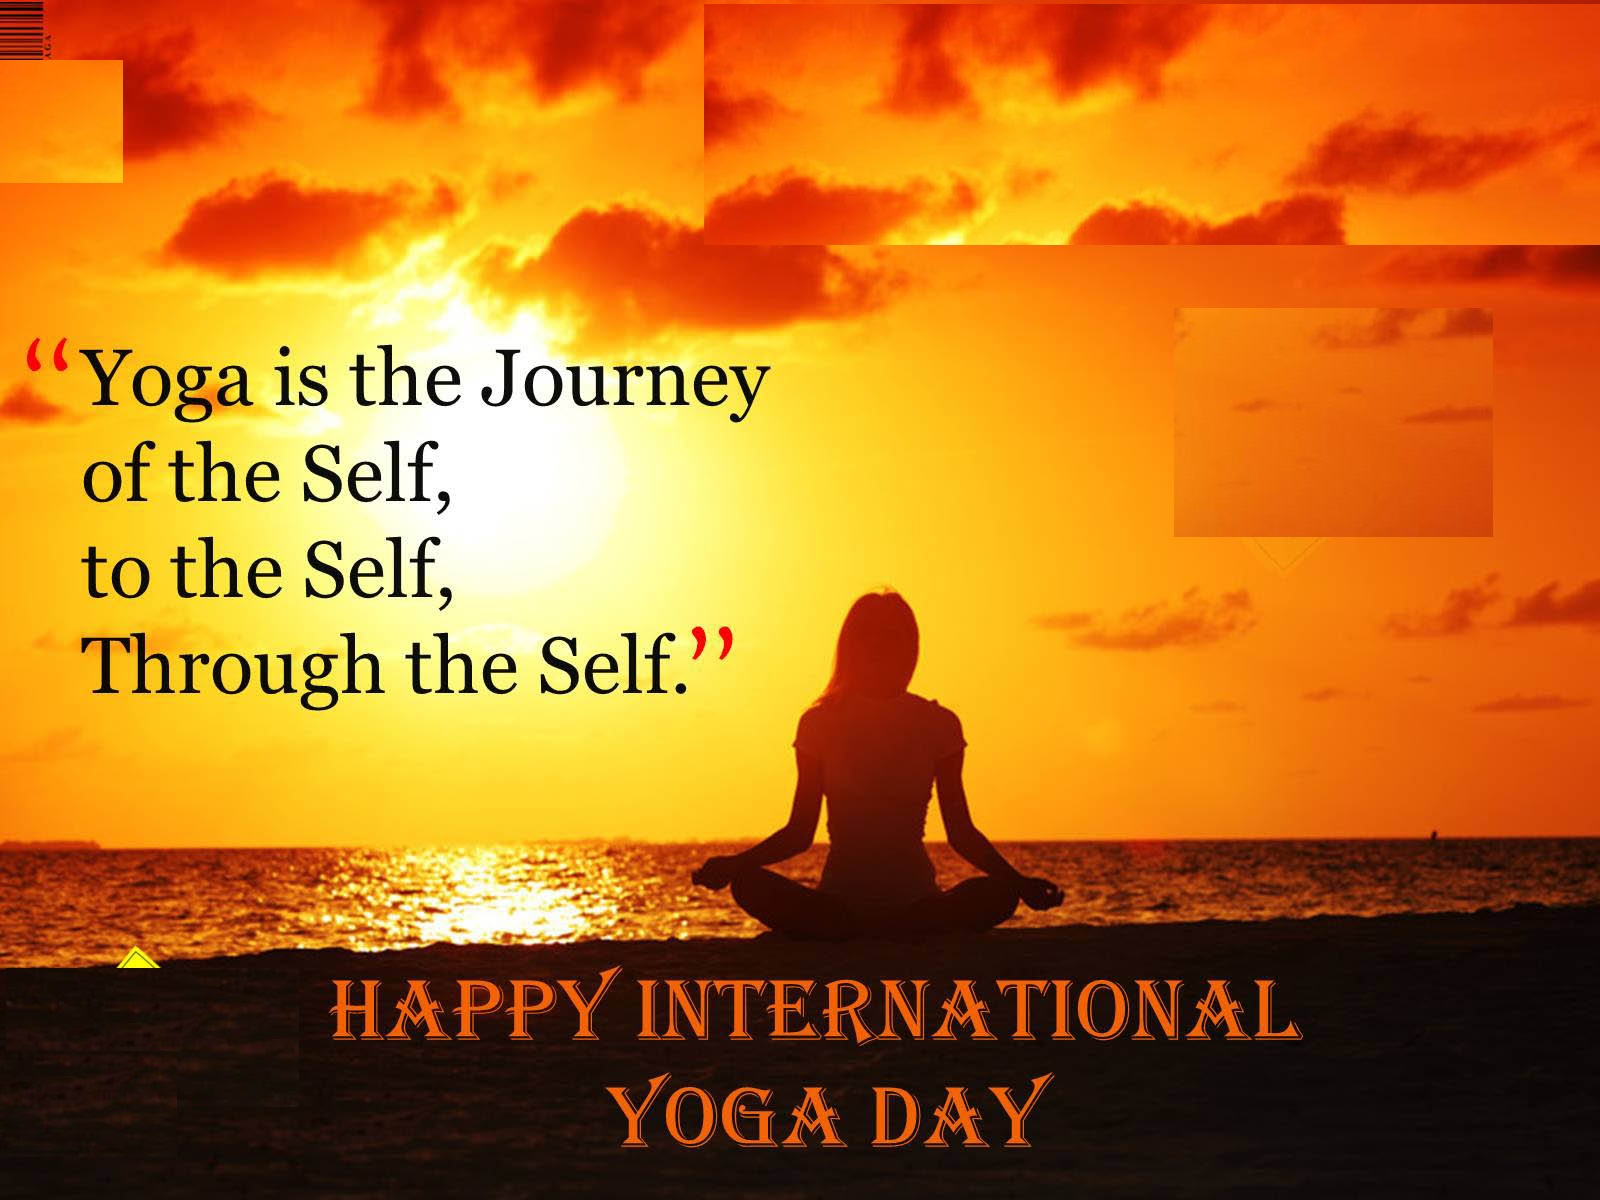 International Yoga Day 2016 animated greetings images with best wishes (6)